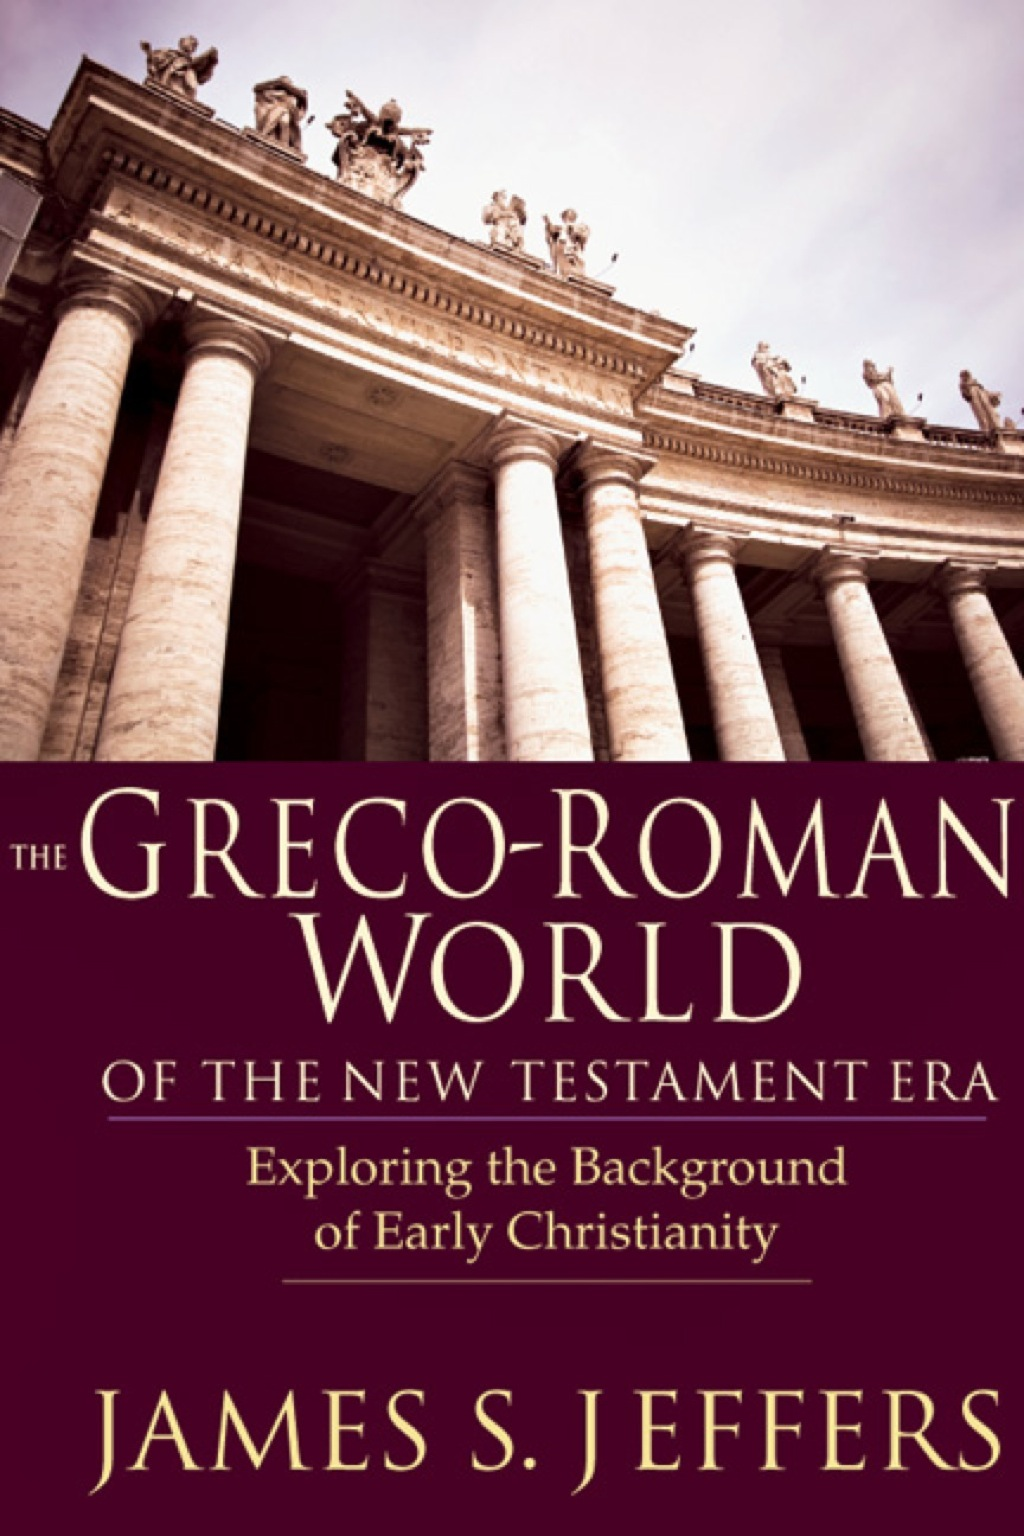 The Greco-Roman World of the New Testament Era: Exploring the Background of Early Christianity (eBook)